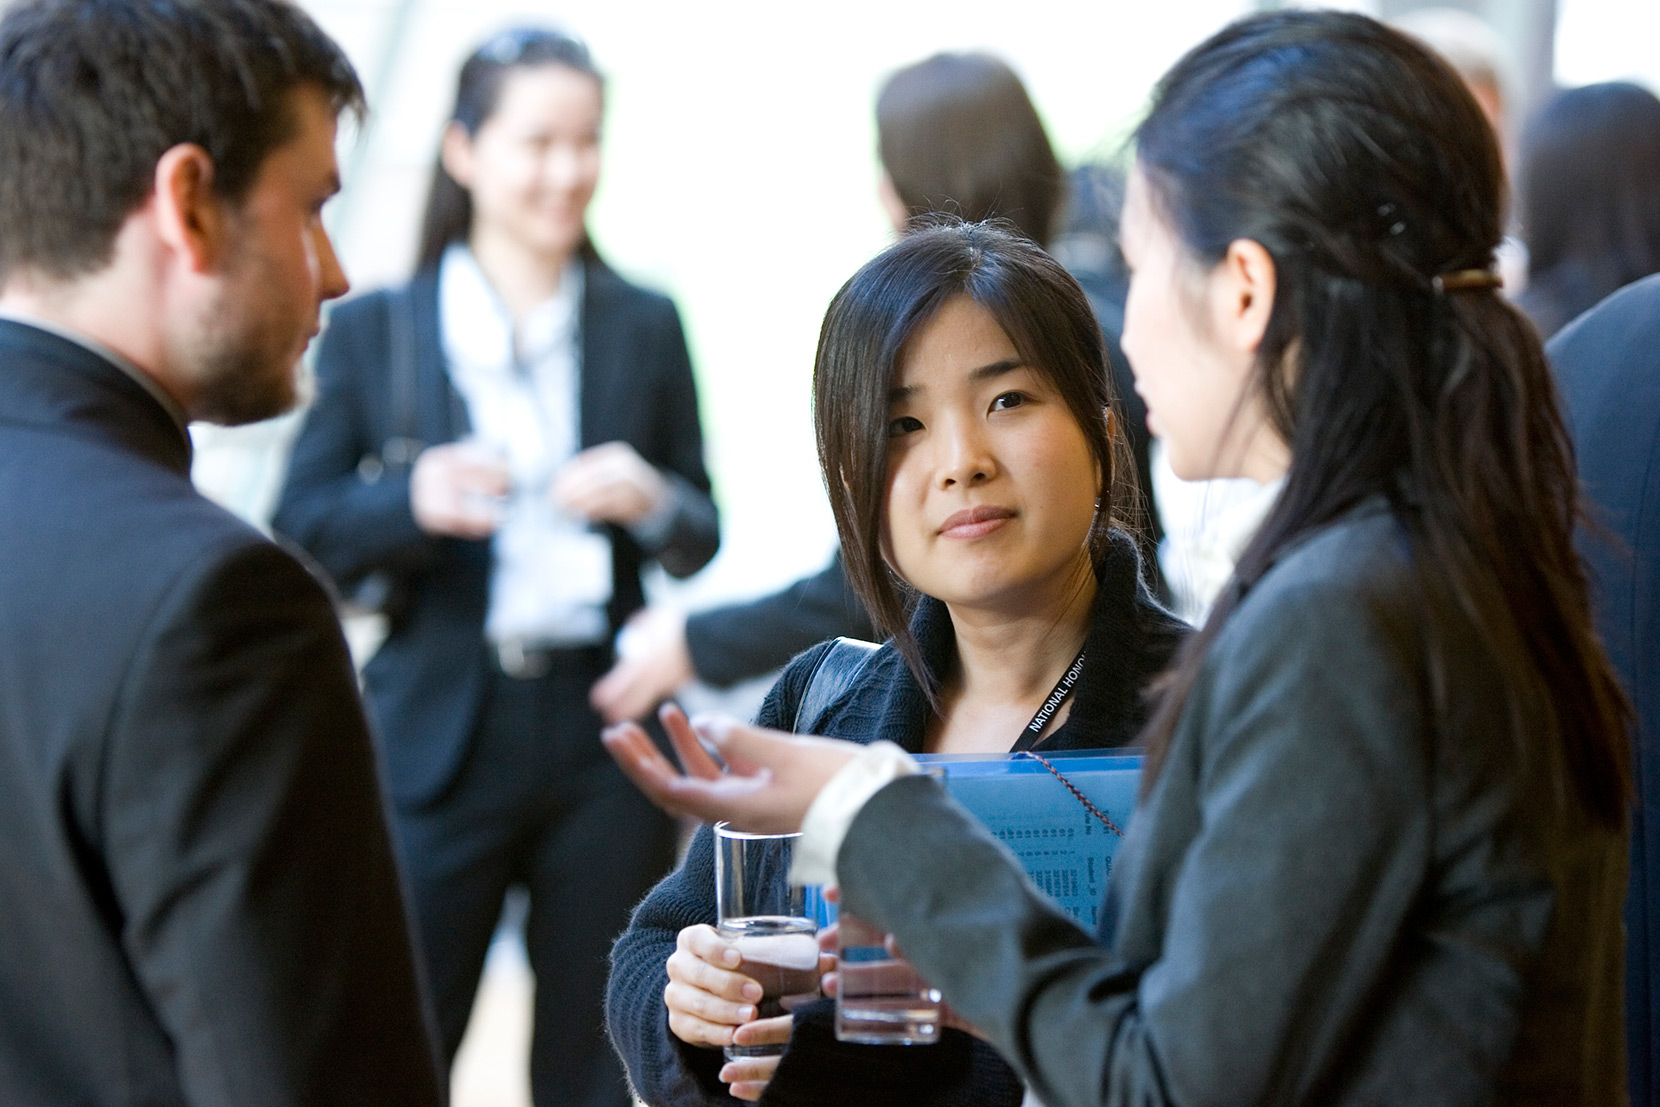 Students talking at an event